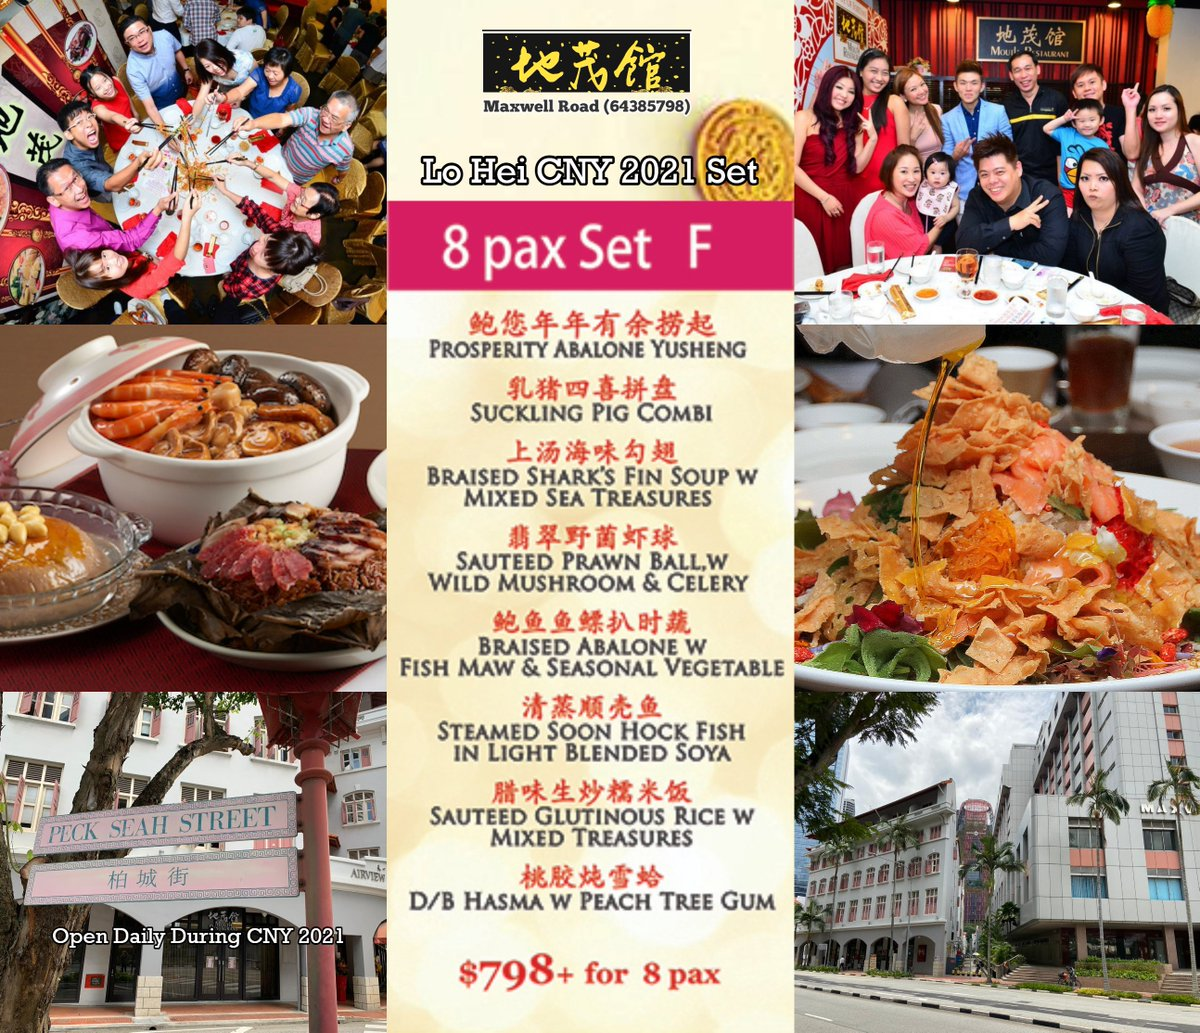 Toss to attain greater heights, prosperity & blessings for CNY 2021 at Mouth Restaurant.  Check out our affordable CNY 2021 Takeaway & Reunion Set Menu at   #CNY2021#yusheng2021 #reuniondinner #celebrations #chinesenewyear #CNY #yusheng #lohei2021 #lohei